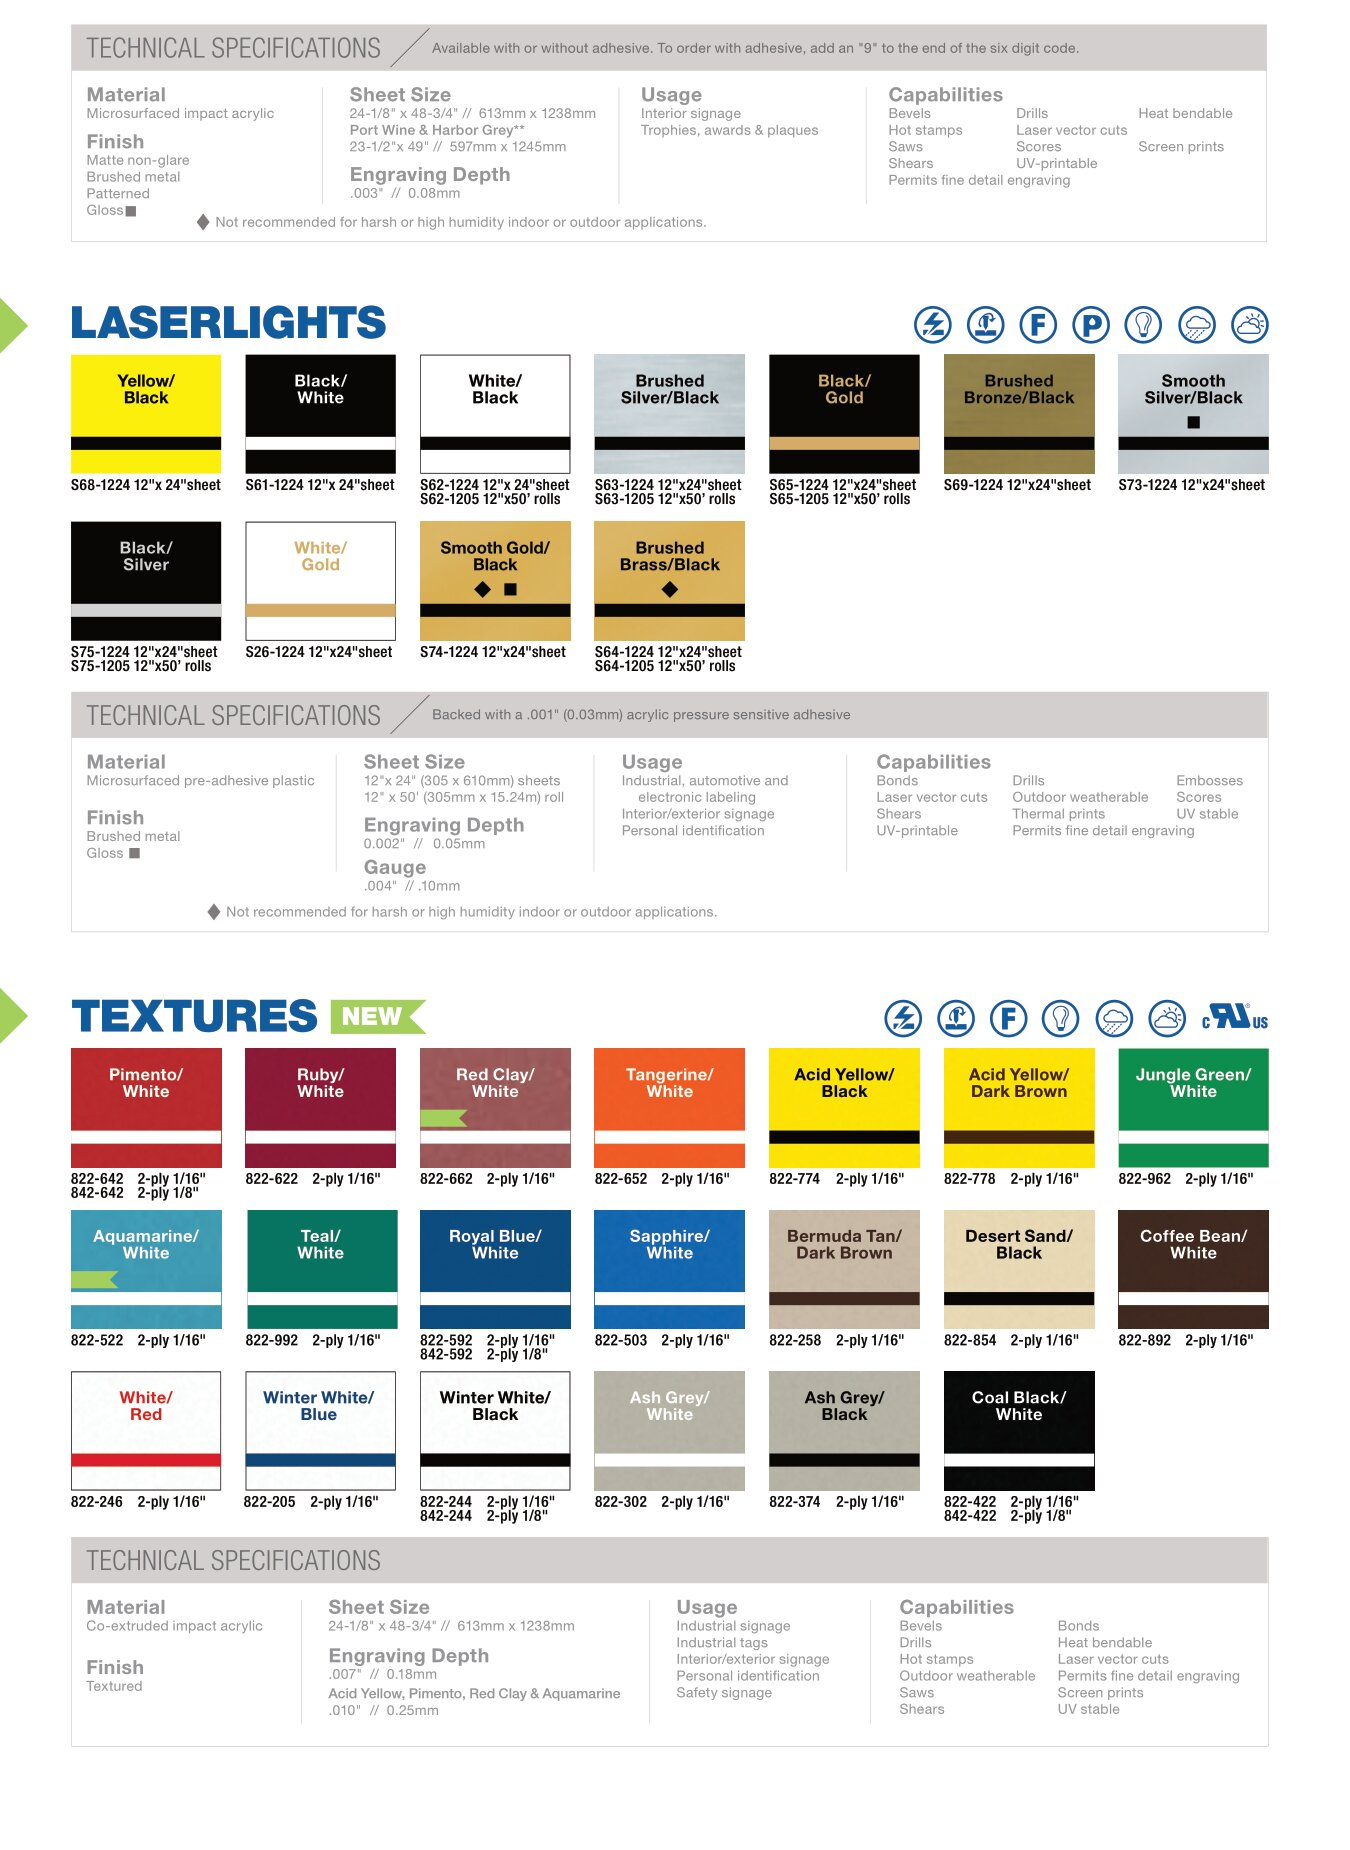 Rowmark-ColorChart-Textures image